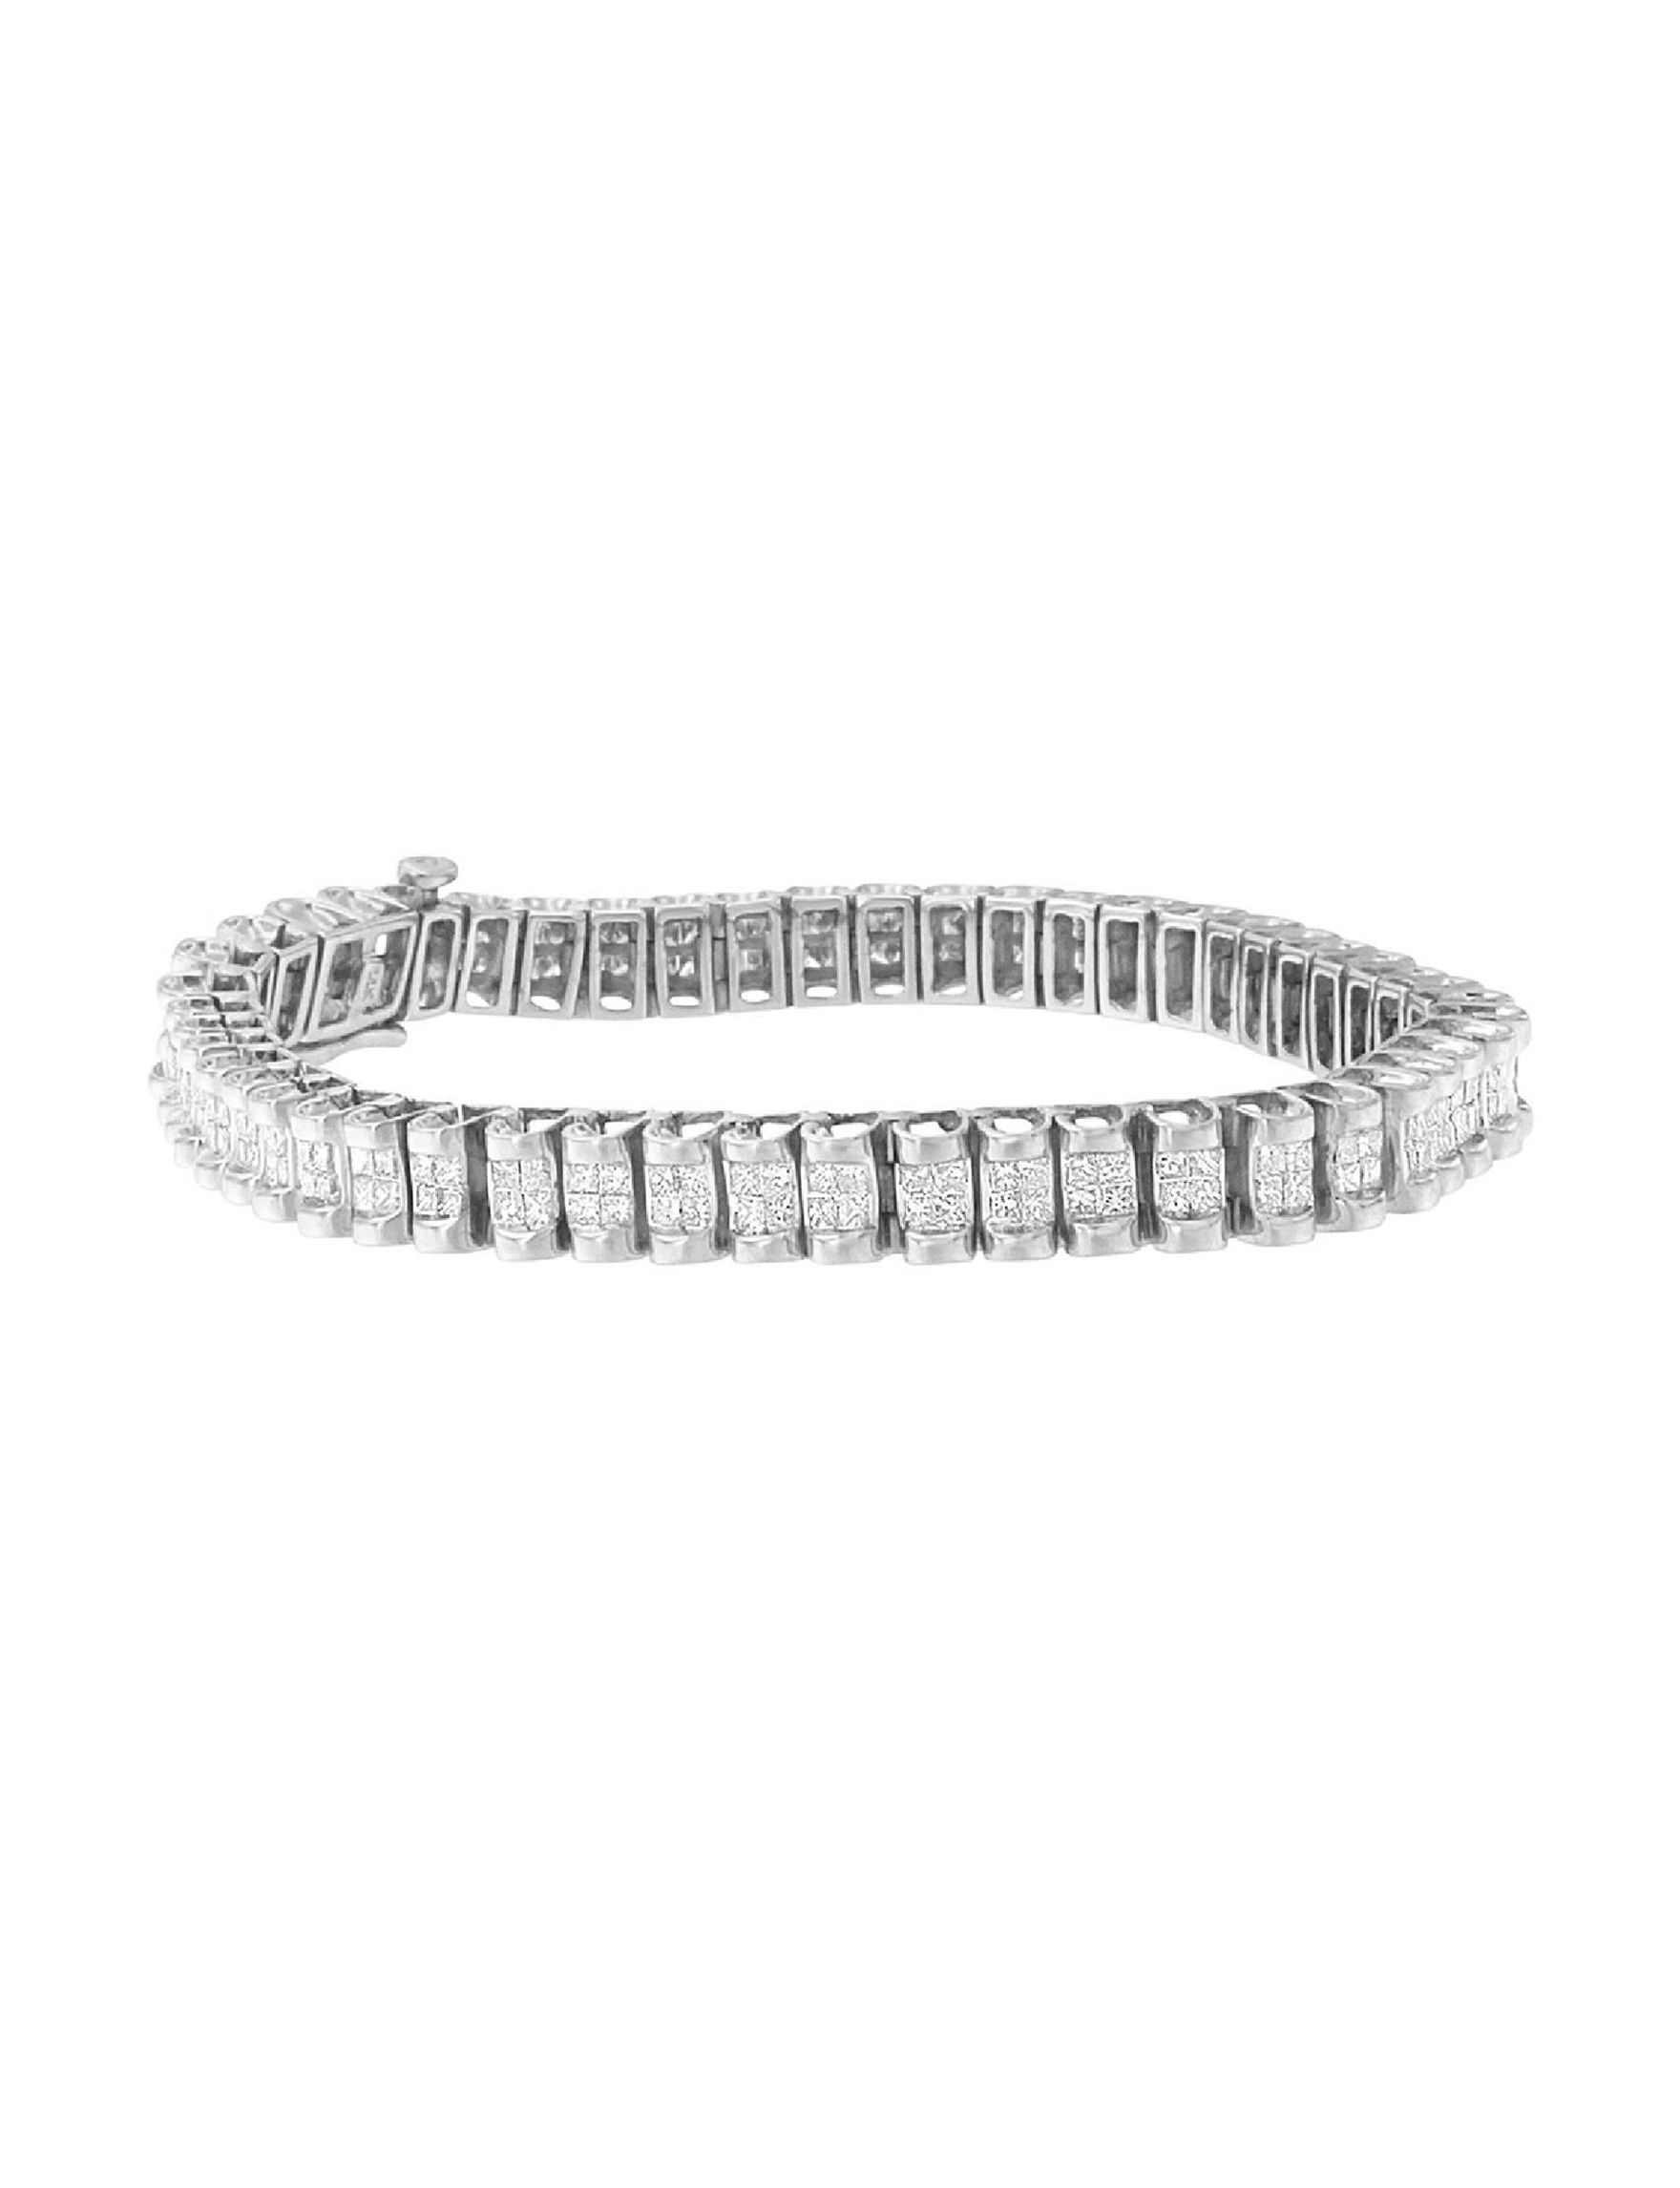 Original Classics White Gold Bracelets Fine Jewelry